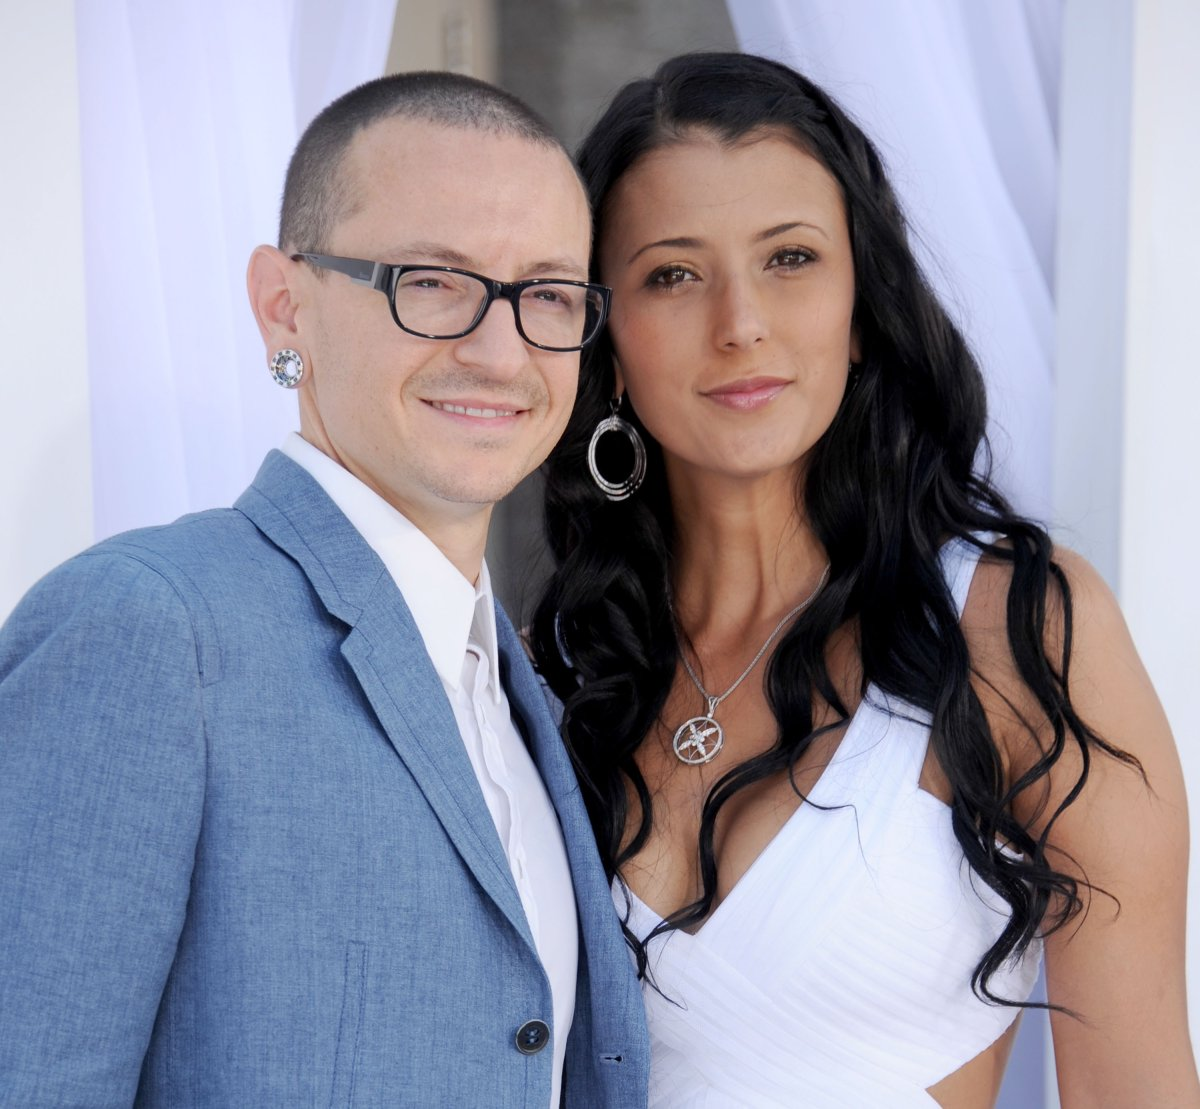 The late musician Chester Bennington of Linkin Park and wife Talinda Ann Bentley at the 2012 Billboard Music Awards at MGM Grand on May 20, 2012 in Las Vegas, Nevada.